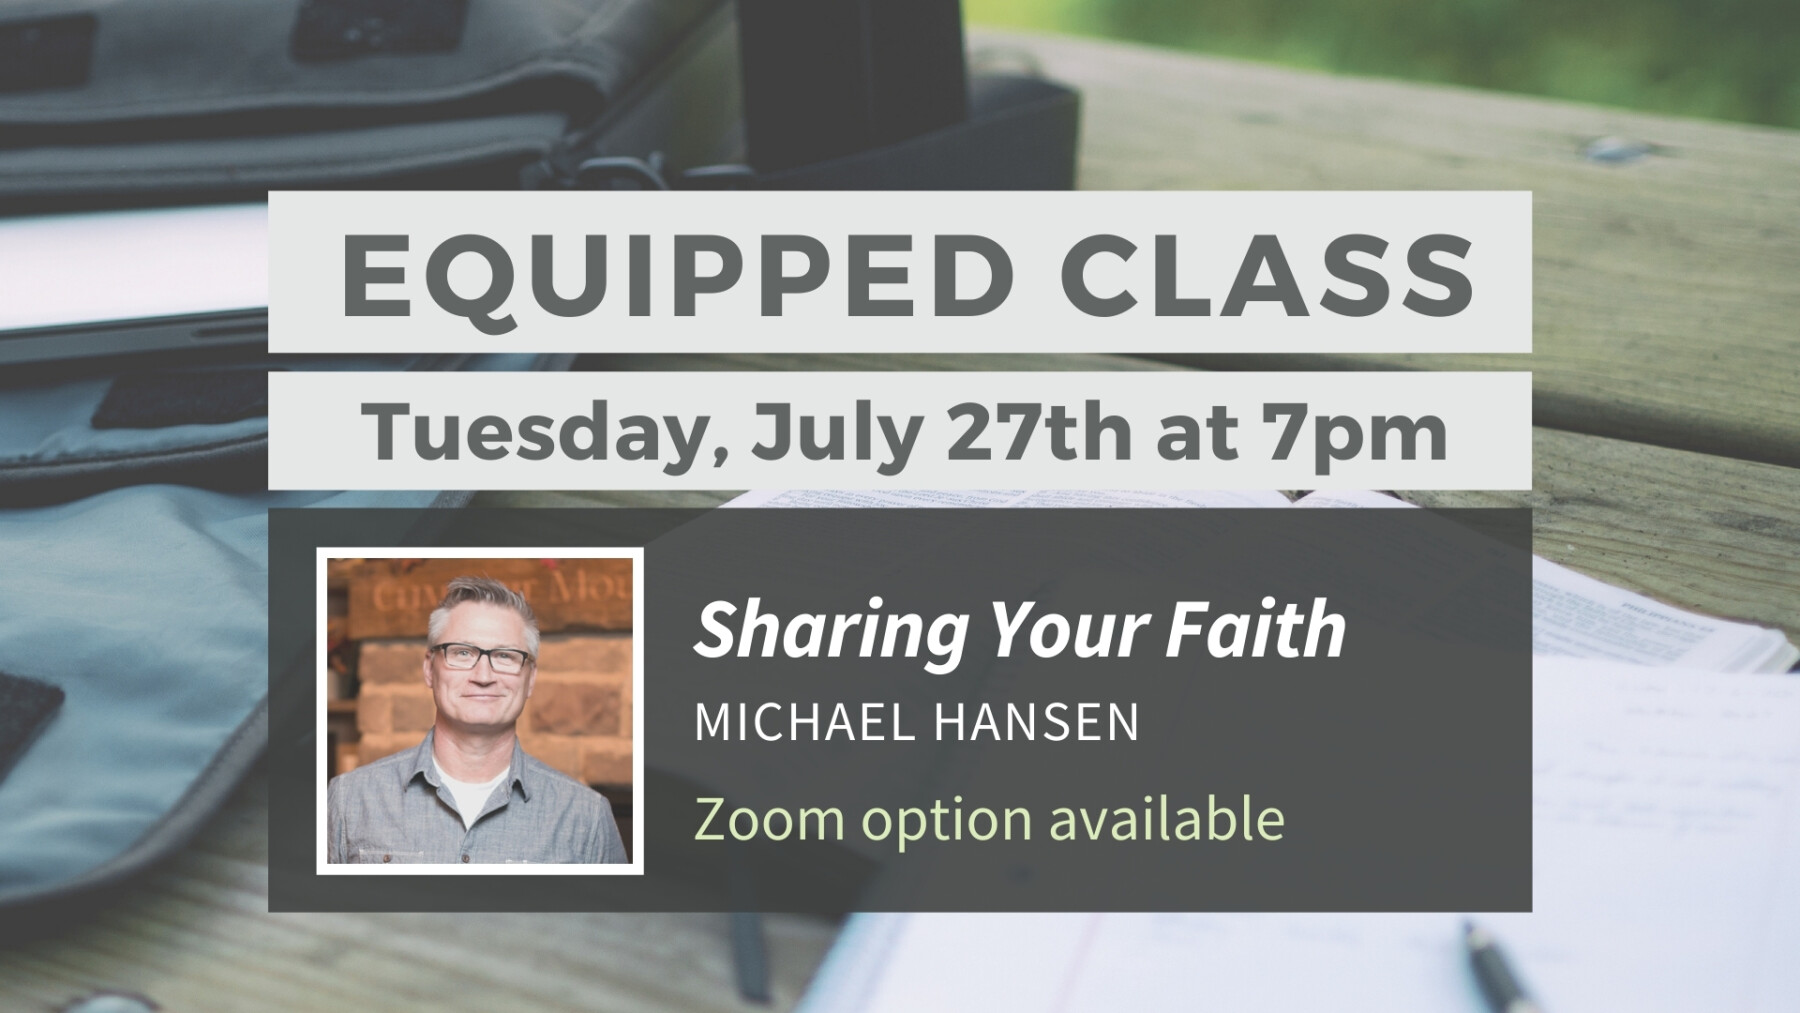 Equipped Class: Sharing Your Faith